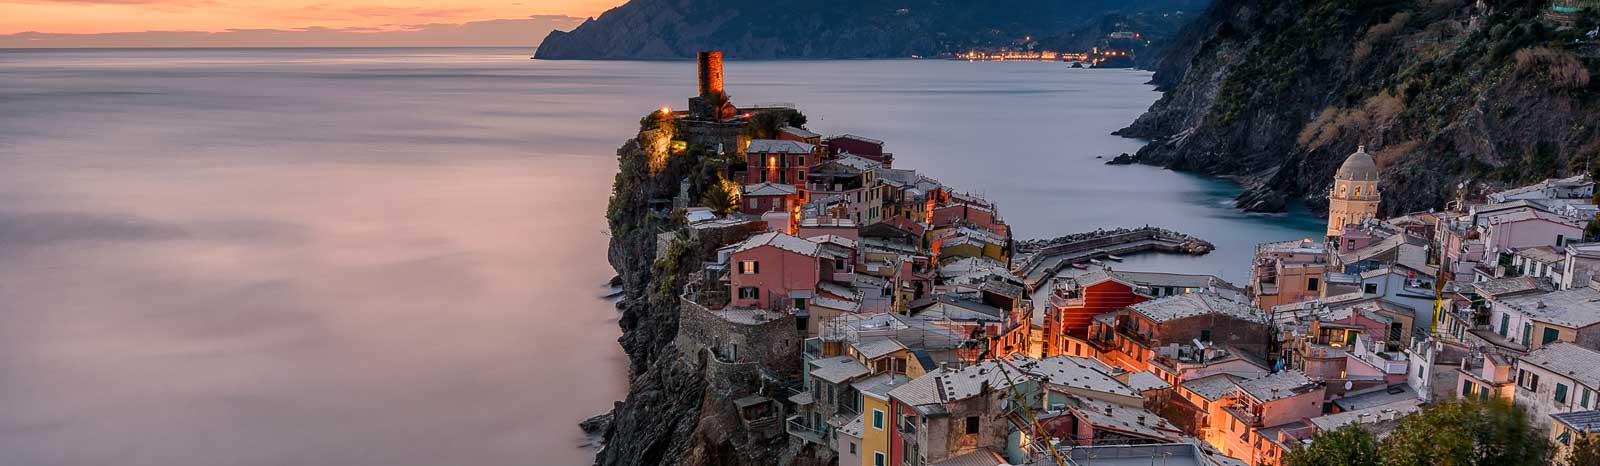 Hiking to the Cinque Terre